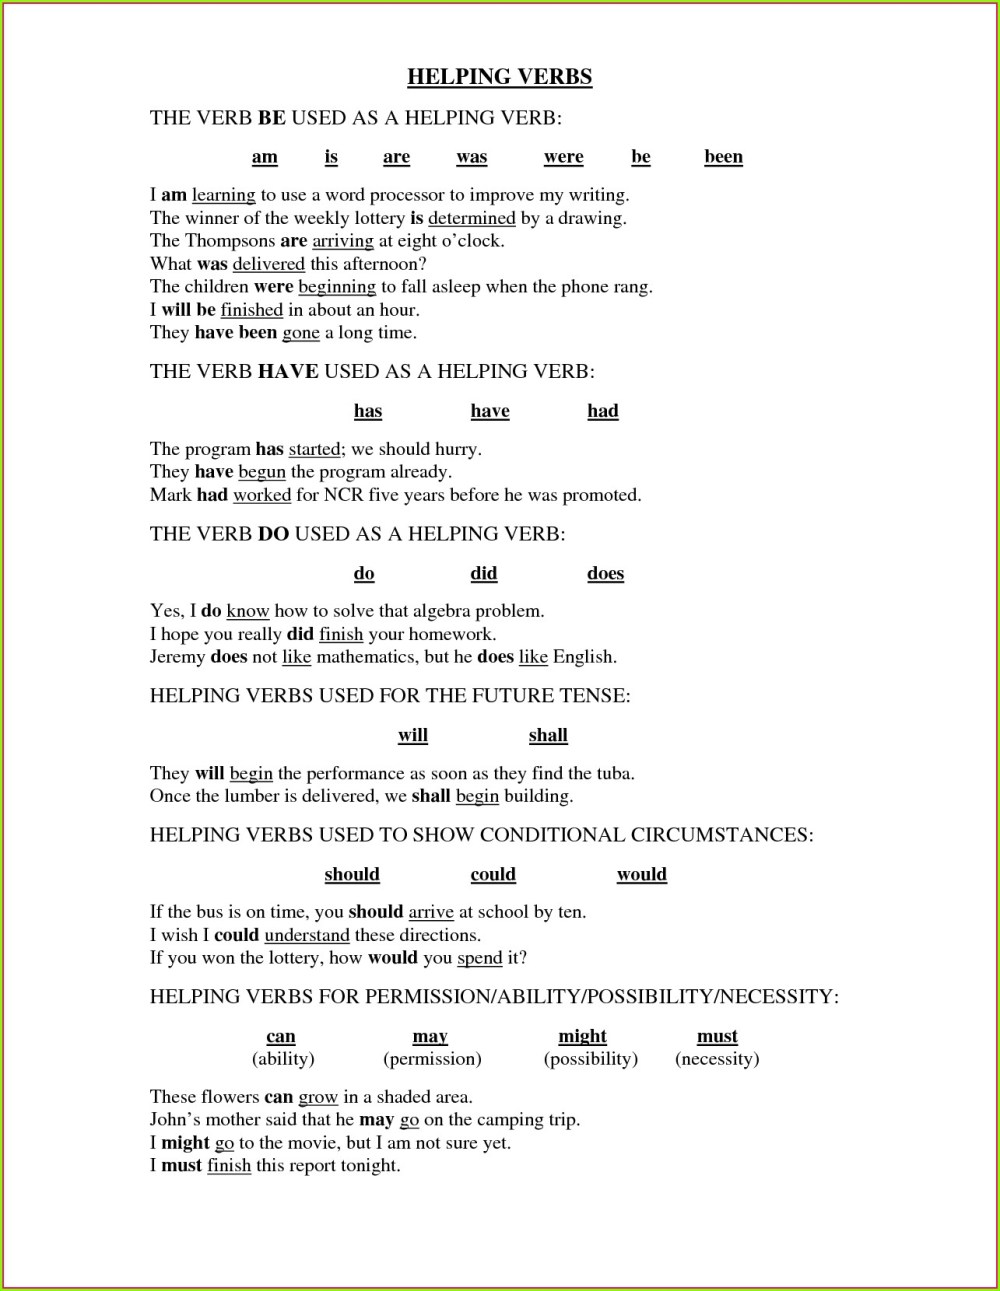 medium resolution of Helping Verbs Worksheets 5th Grade   Printable Worksheets and Activities  for Teachers